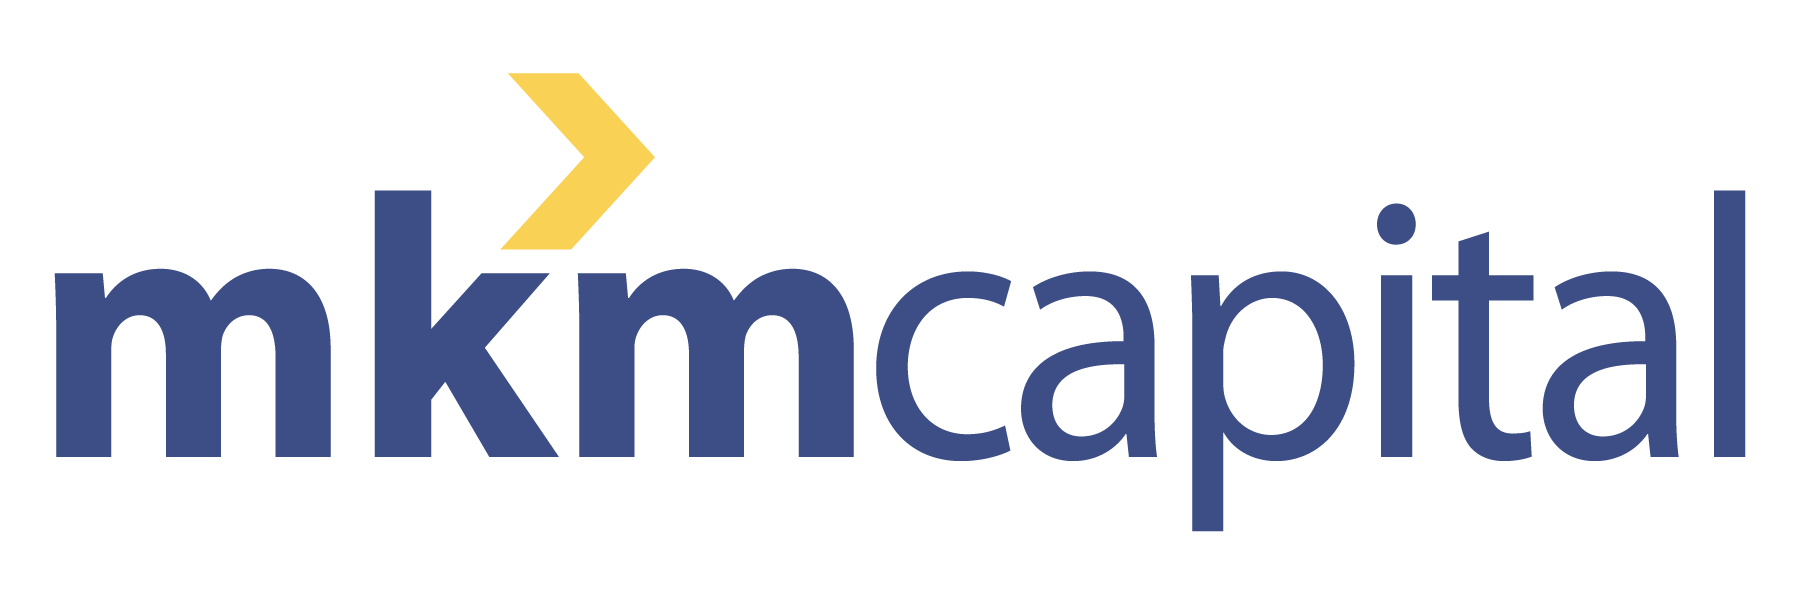 Mkm capital logo